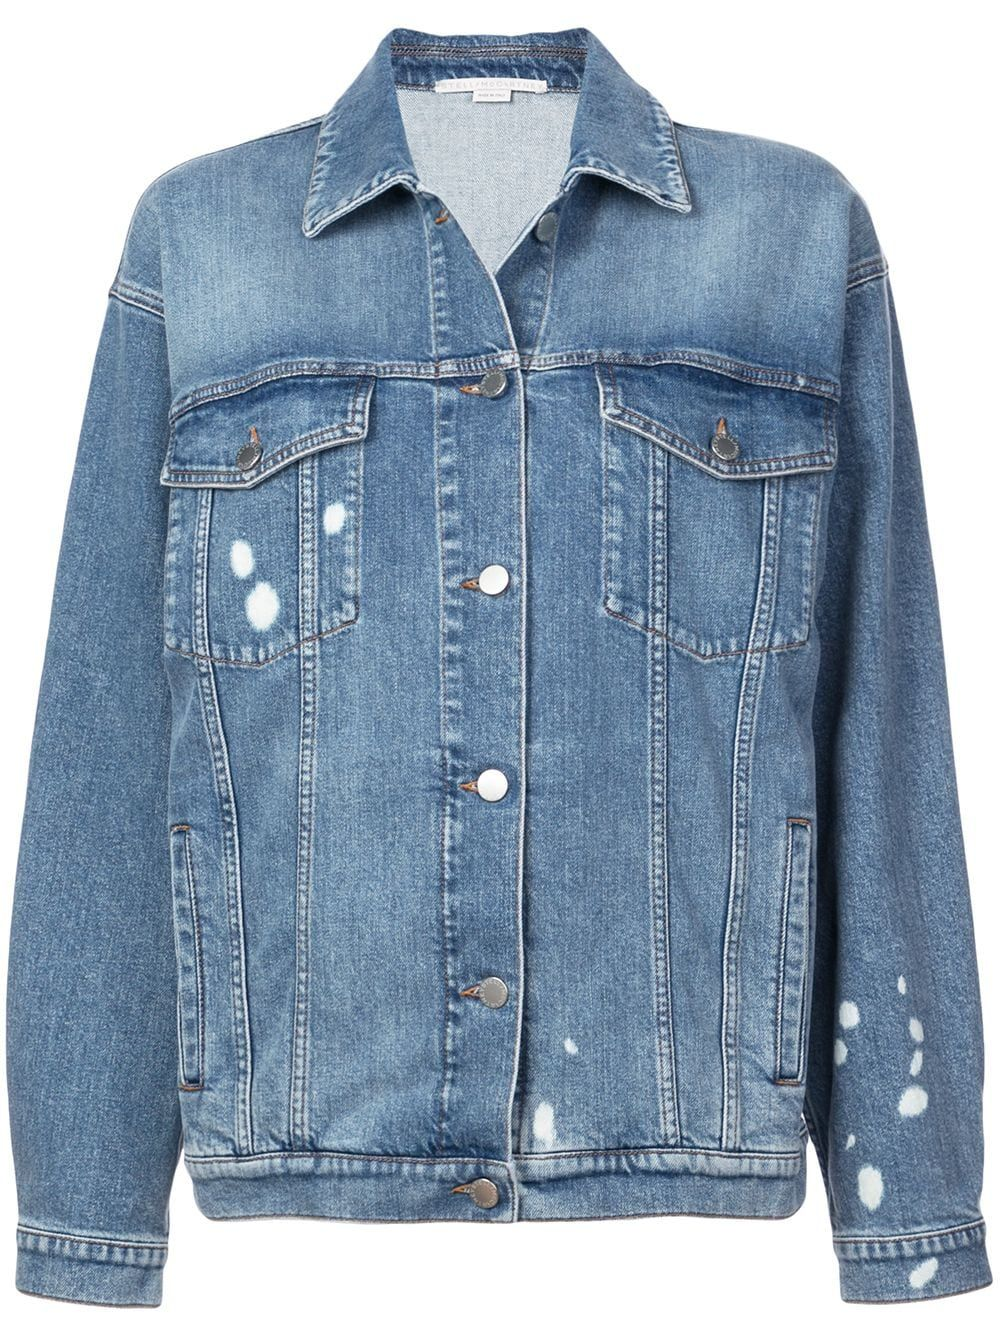 9cec1bc13c Stella McCartney painted denim jacket - Blue in 2019 | Products ...